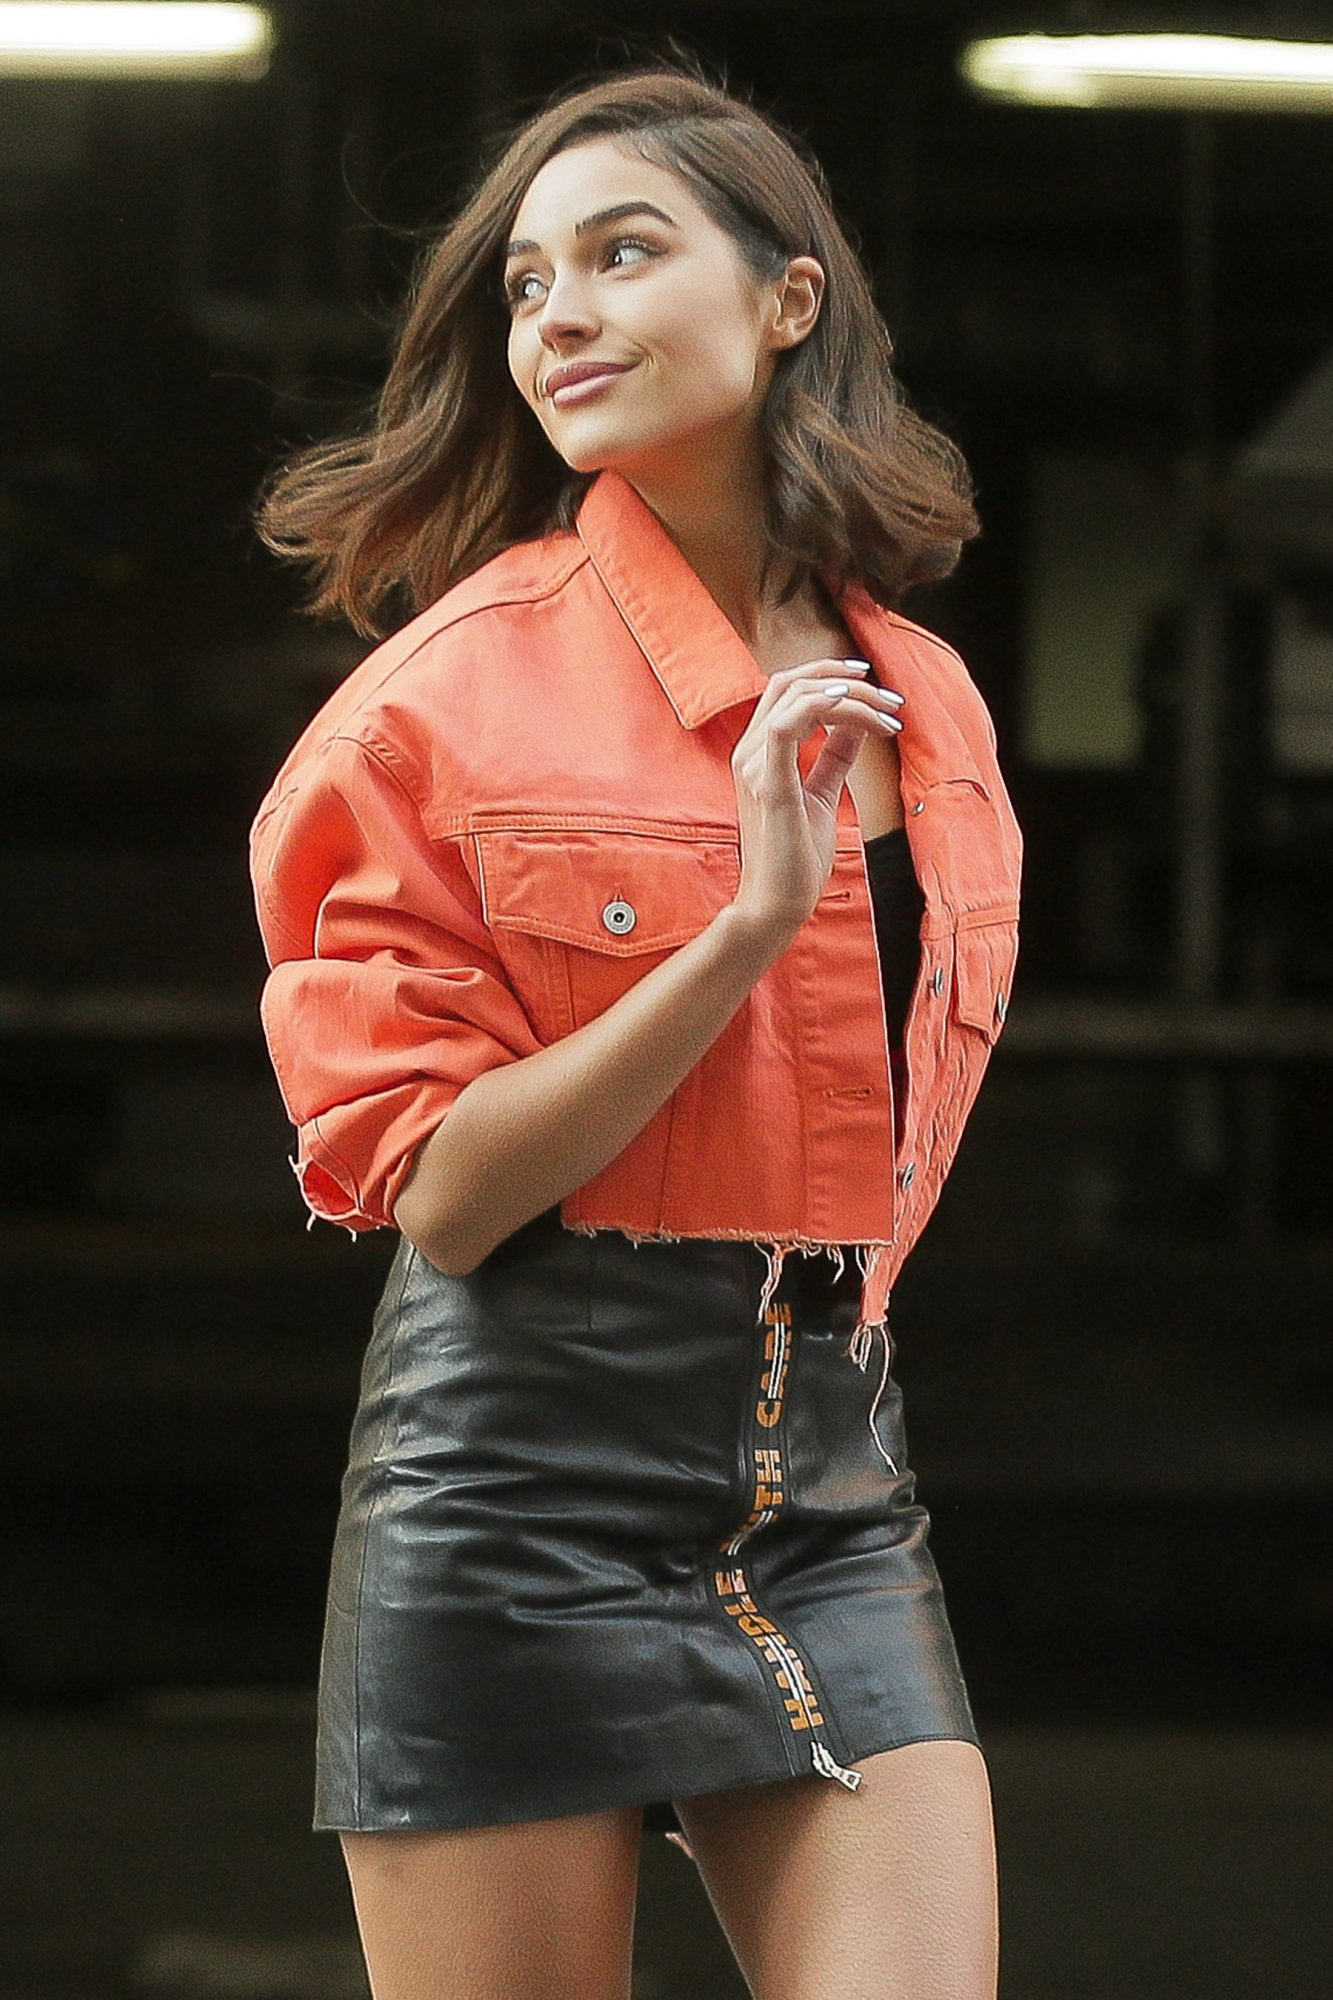 Olivia Culpo poses up for a photoshoot in New York City